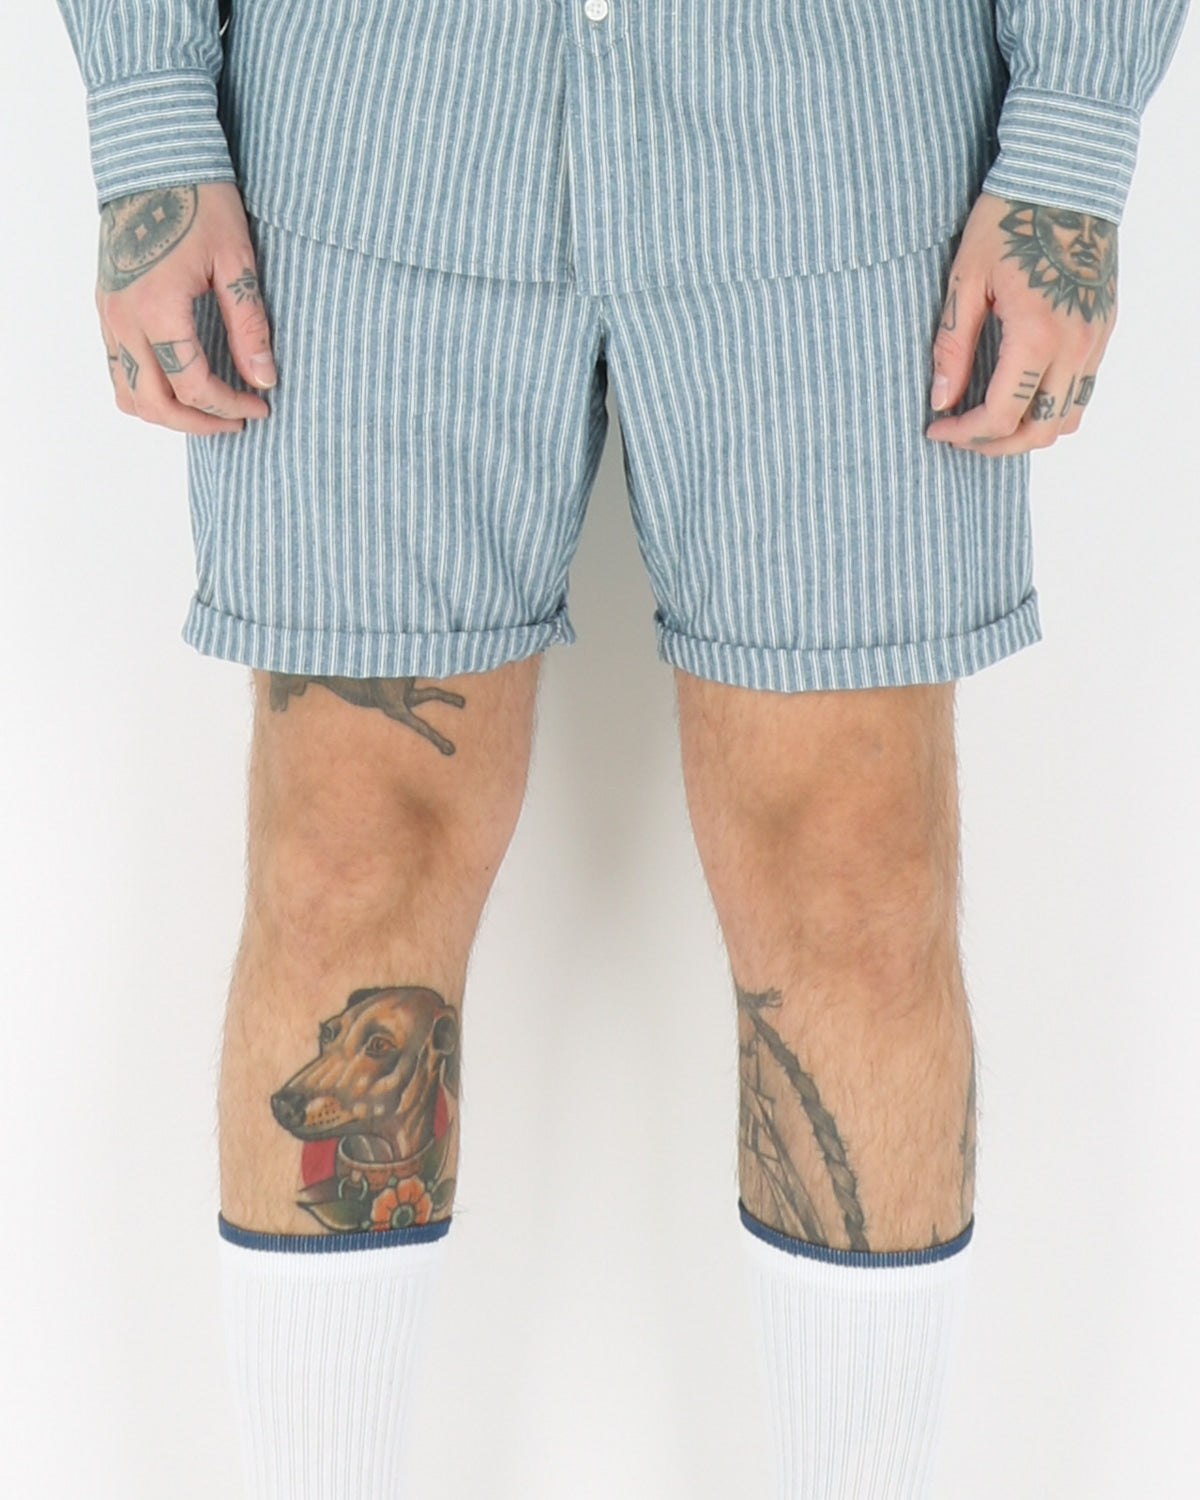 wearecph_janzik shorts_stripe_1_2